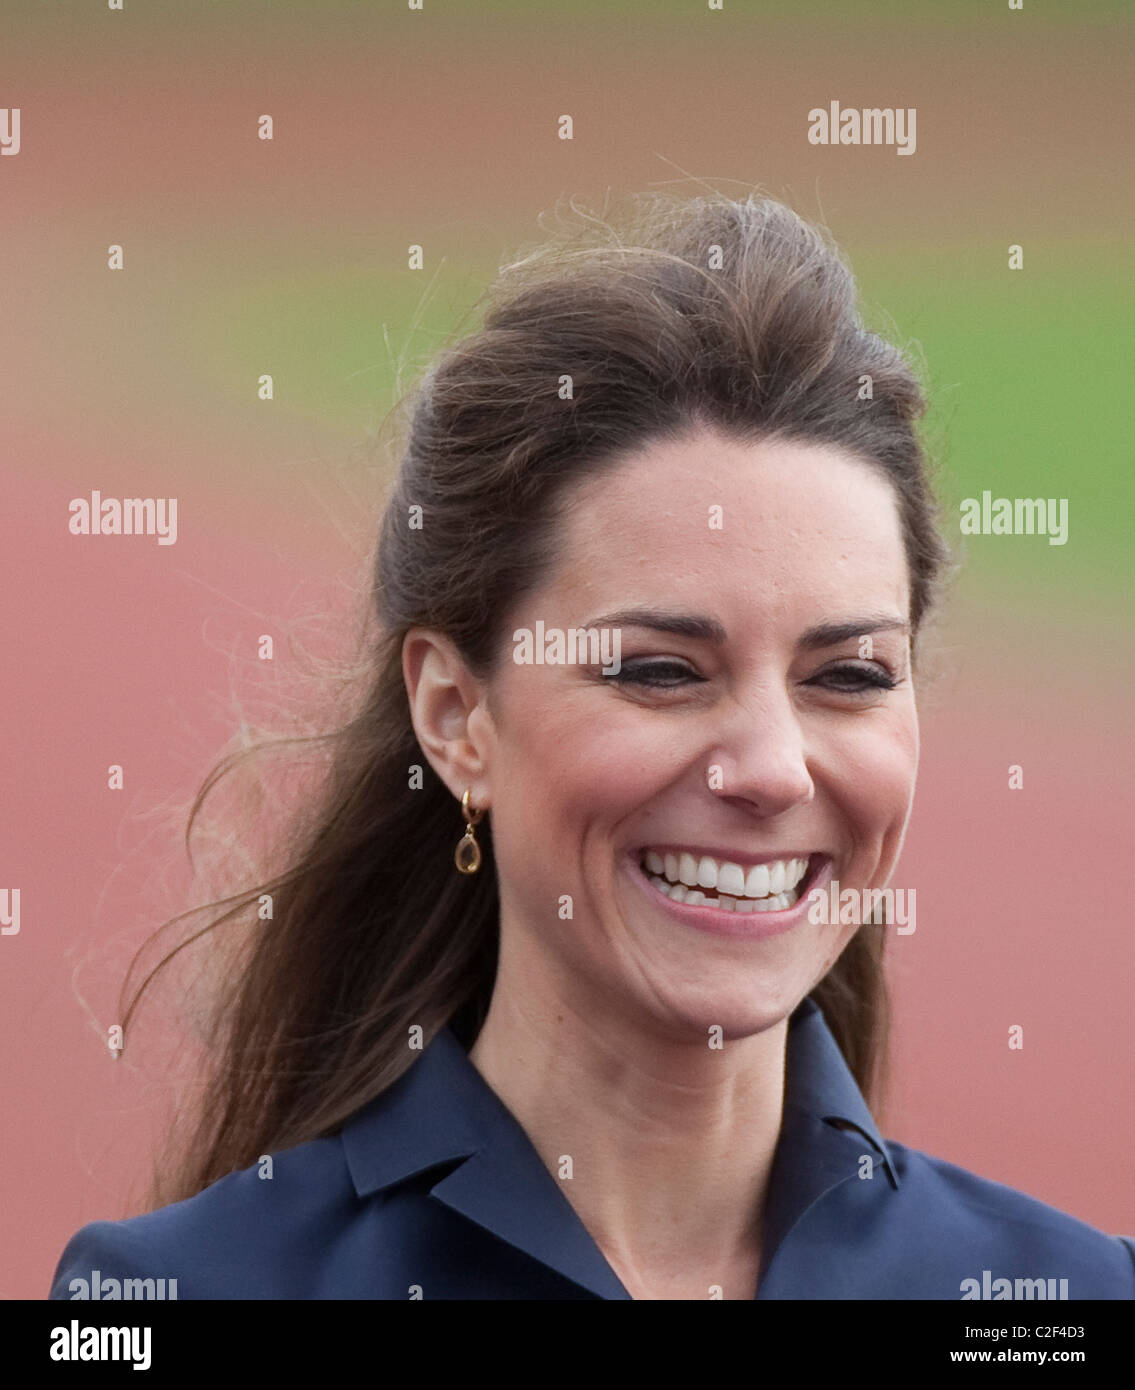 Kate Middleton Imágenes De Stock & Kate Middleton Fotos De Stock - Alamy